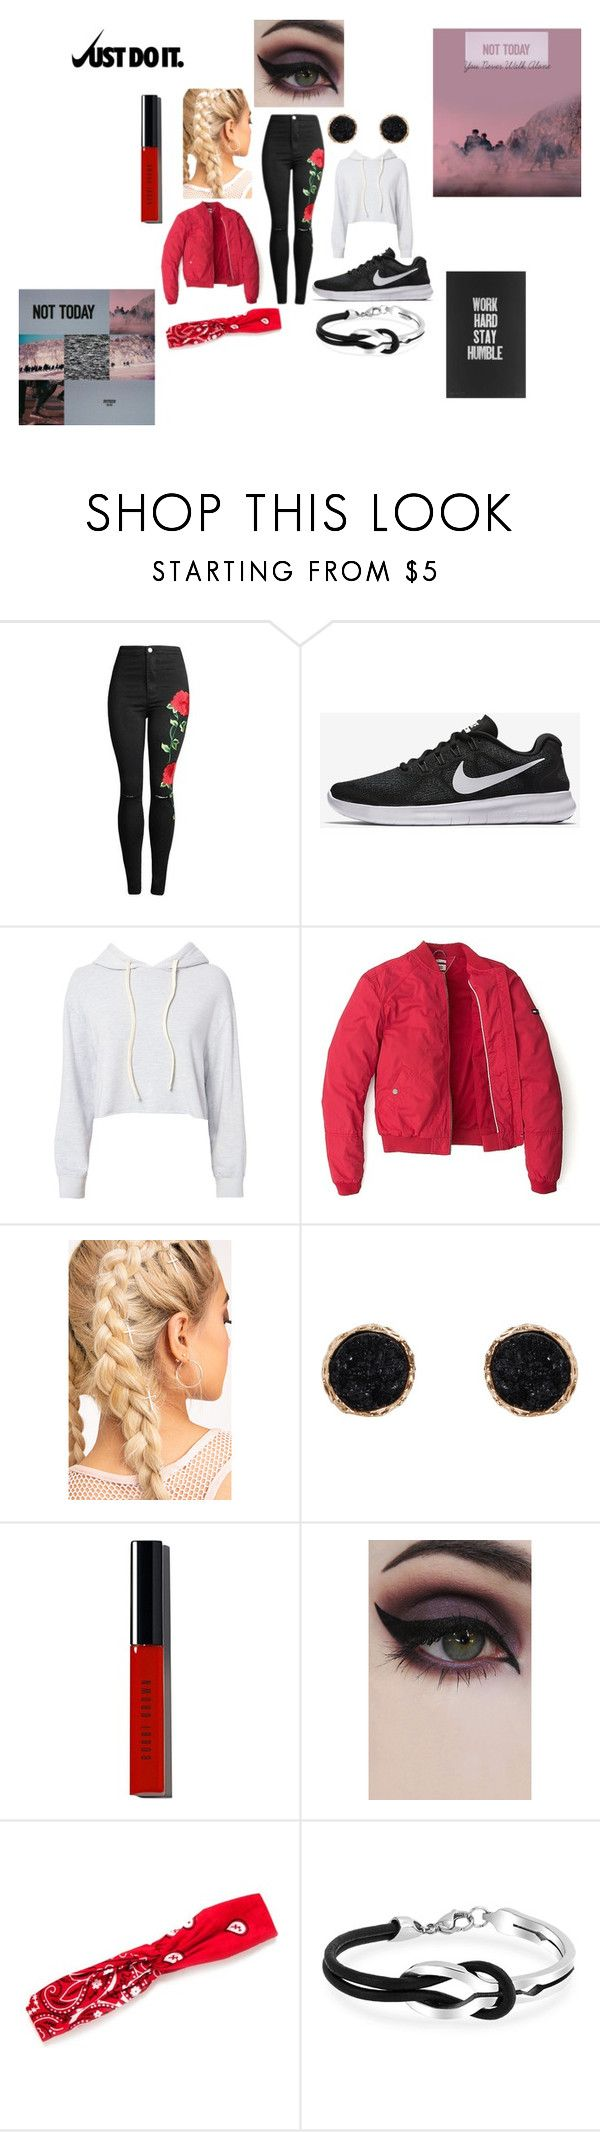 """not today bts inspired outfit"" by aholabeth on Polyvore featuring NIKE, Monrow, Tommy Hilfiger, Humble Chic, Bobbi Brown Cosmetics, Concrete Minerals, Red Camel and Bling Jewelry"